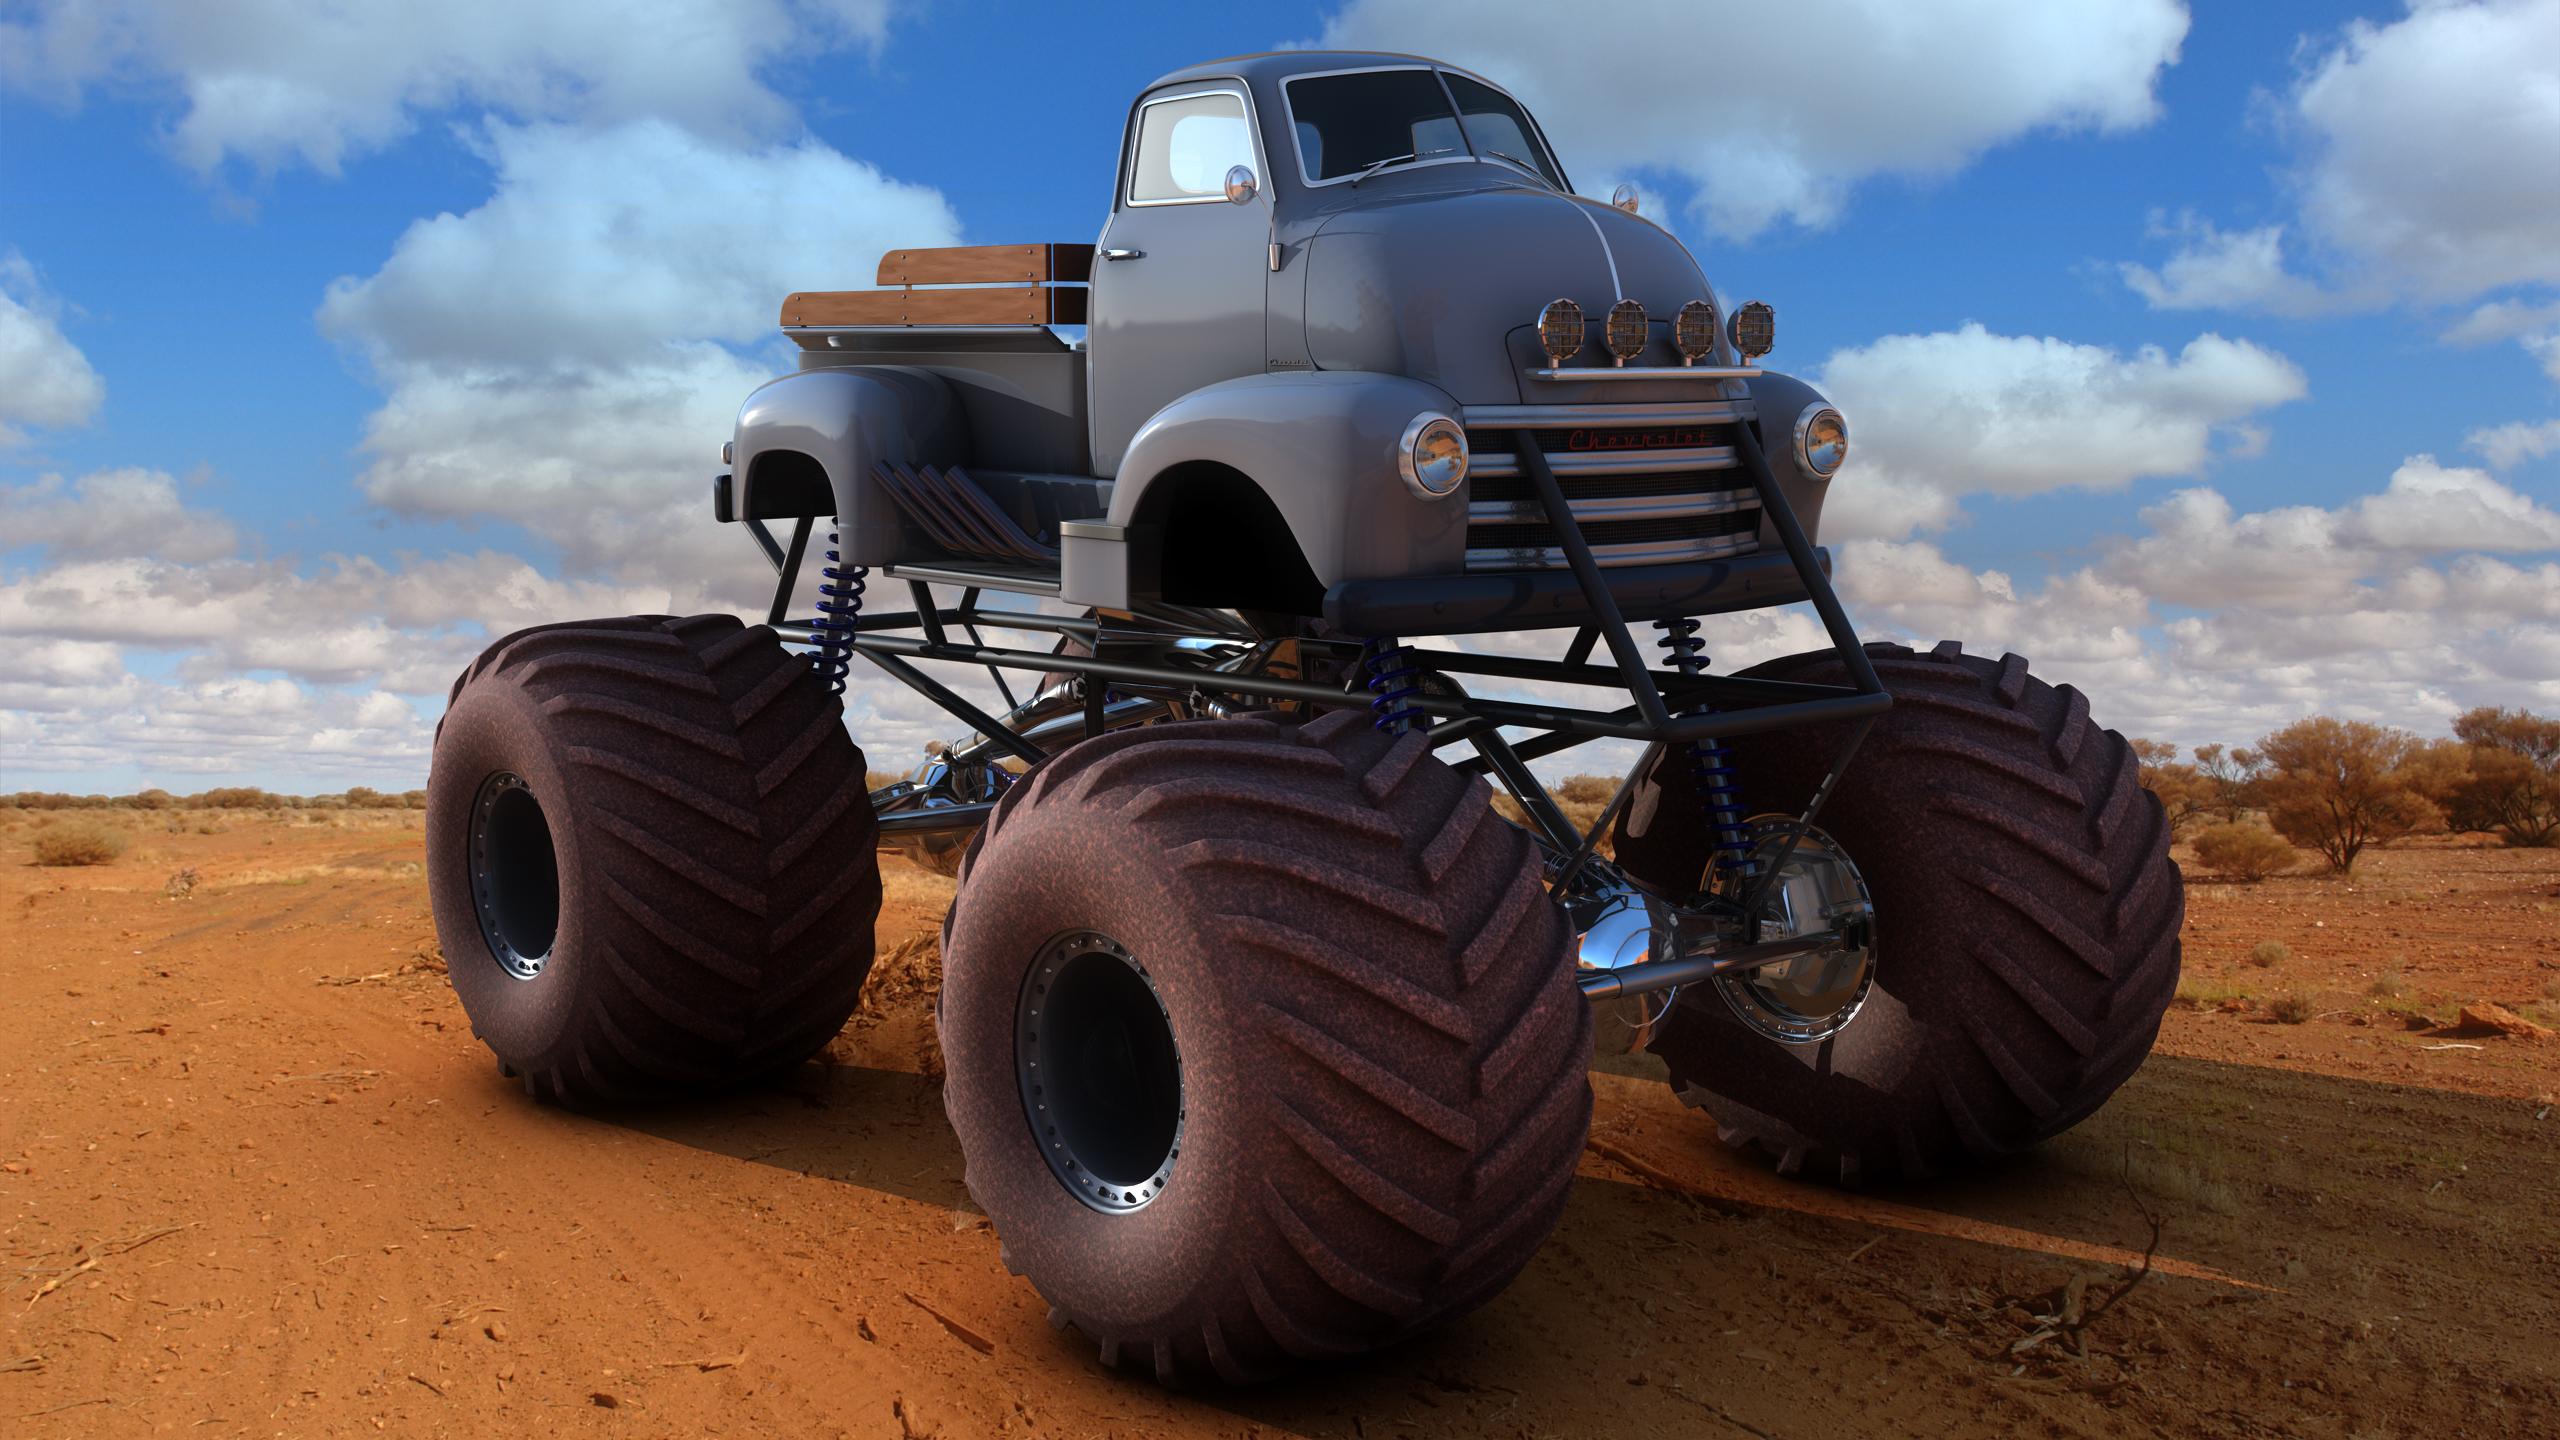 Chevy Coe Monster Truck By Samcurry On Deviantart